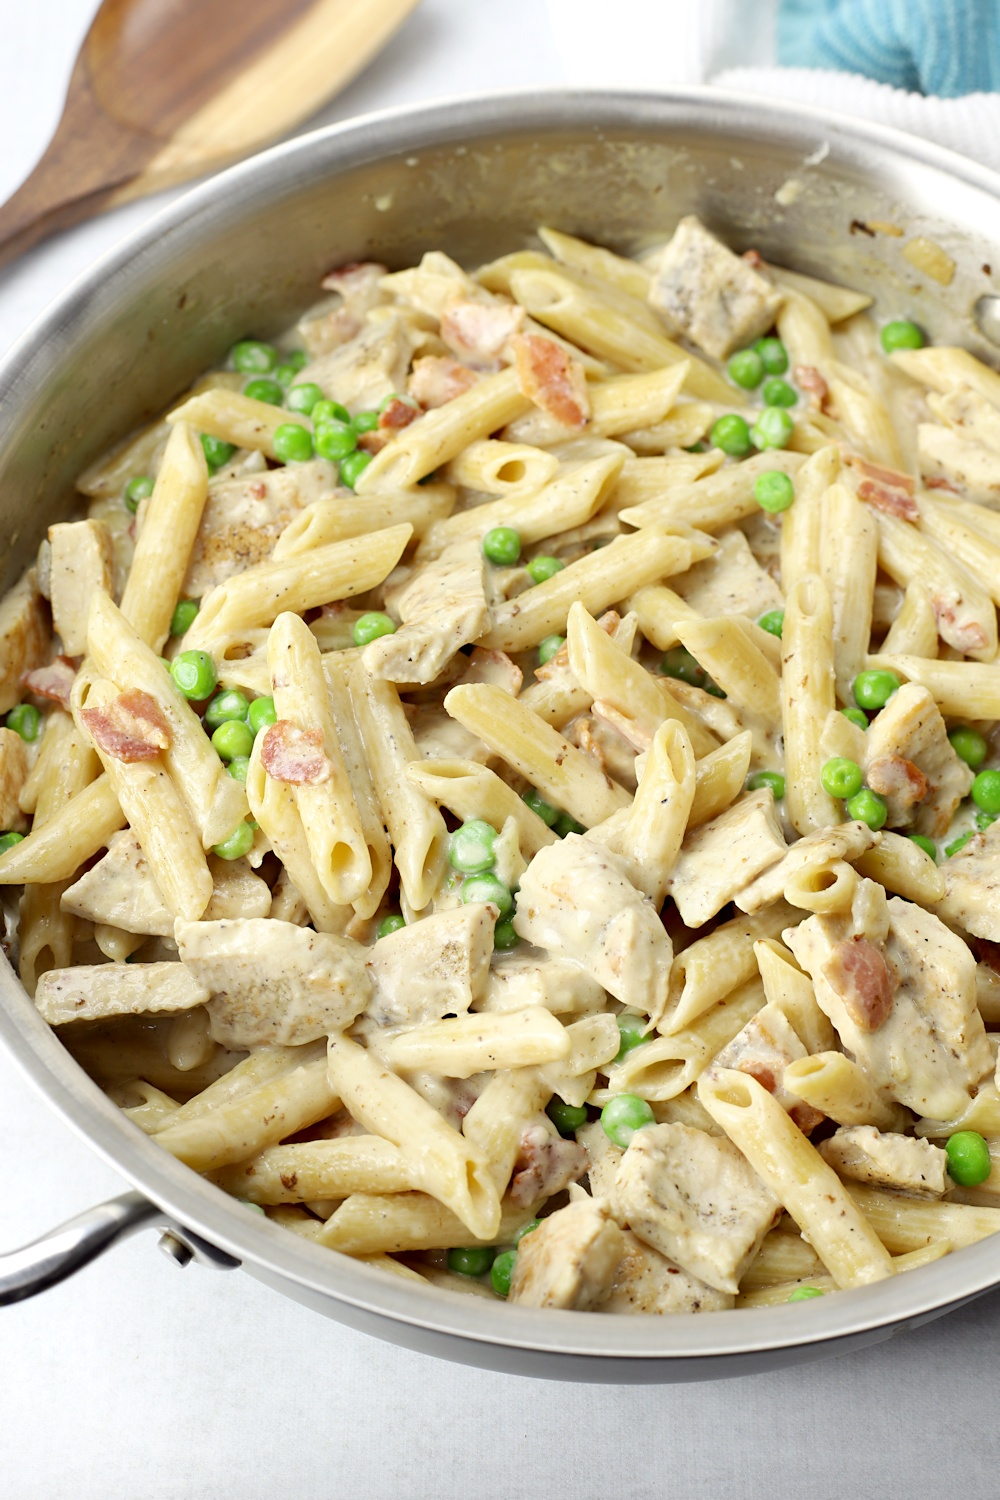 Bits of turkey, peas, and bacon with penne pasta.